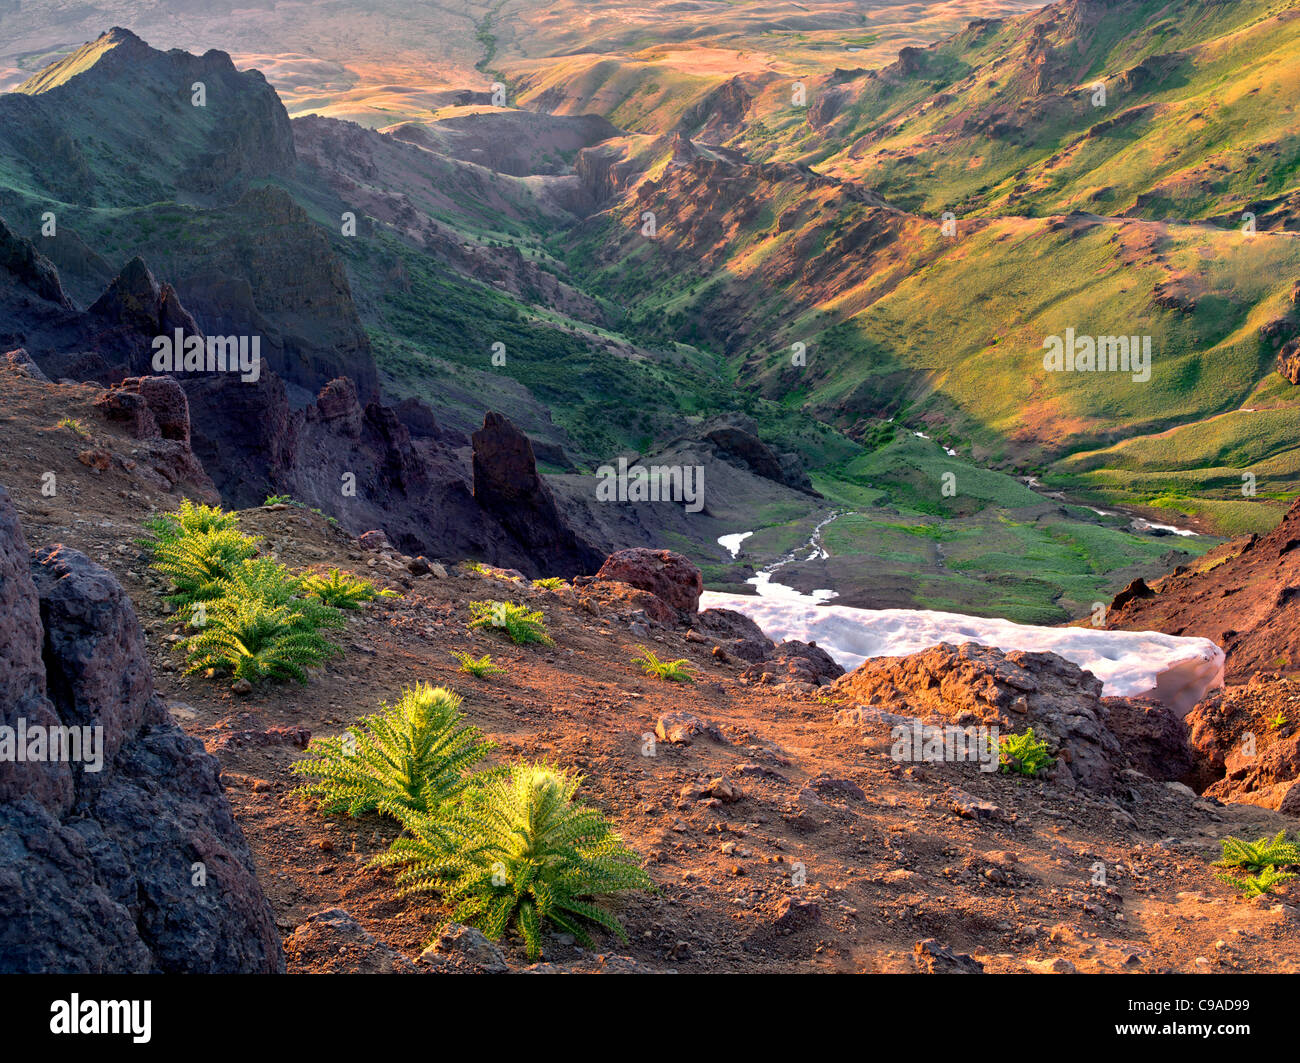 East Rim Overlook with thistles. Steens Mountain Wilderness, Oregon - Stock Image